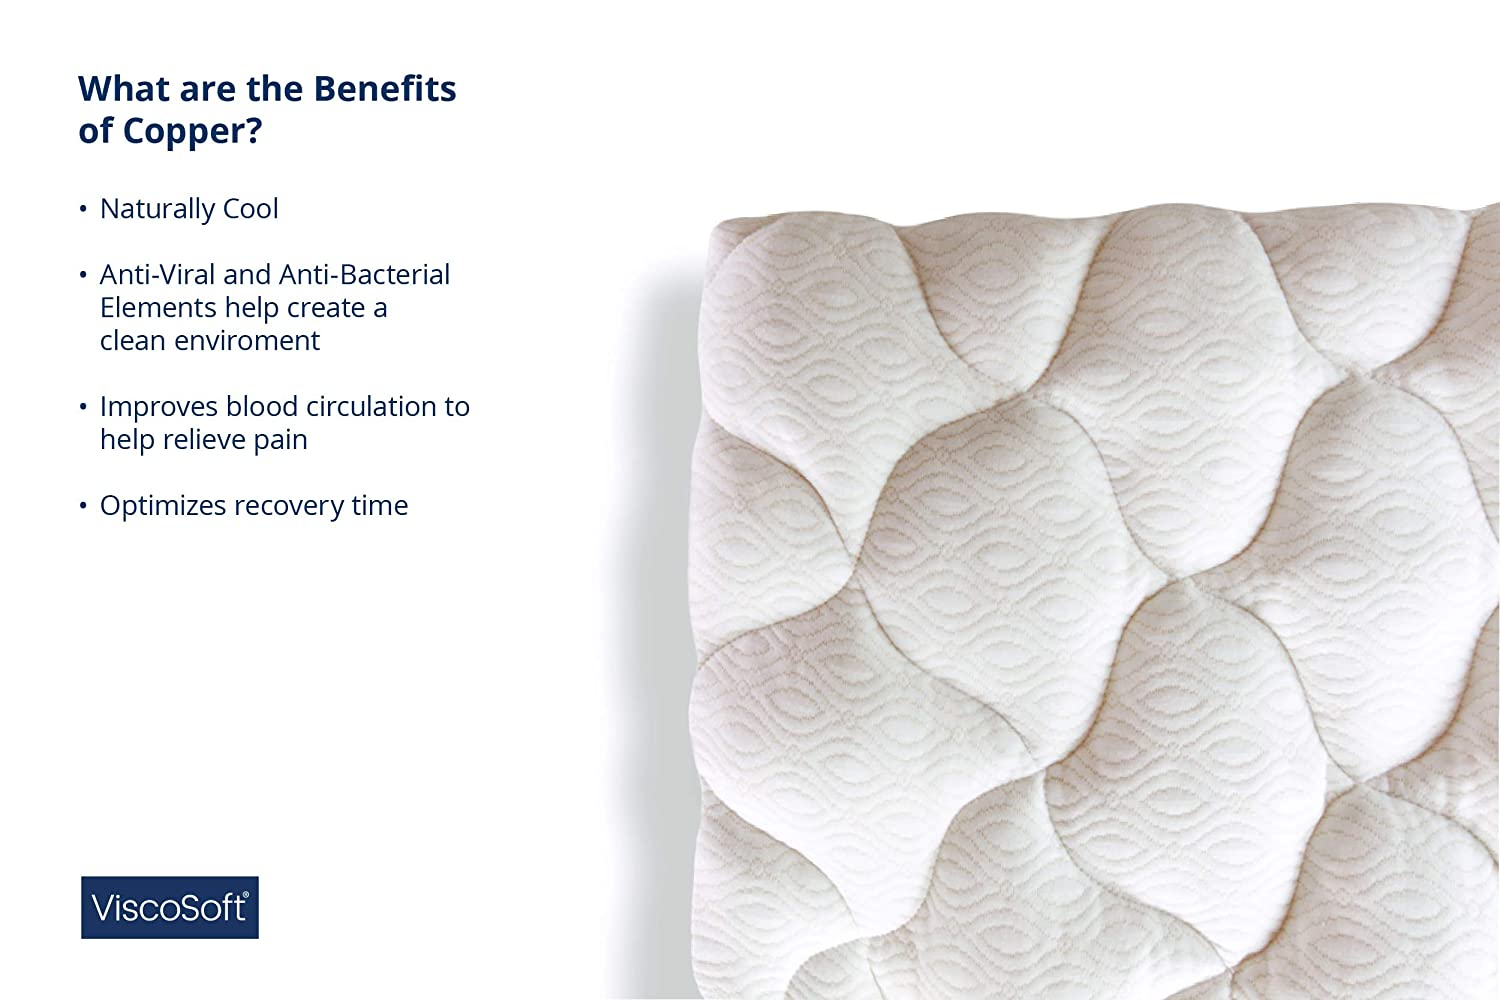 Premium Cloud-Like Support-Perfect Quilted Pillow Top for All Sleeping Positions ViscoSoft Copper Mattress Pad Fiberfill Pillow Top Queen Mattress Topper Deep Pocket for Secured Fit